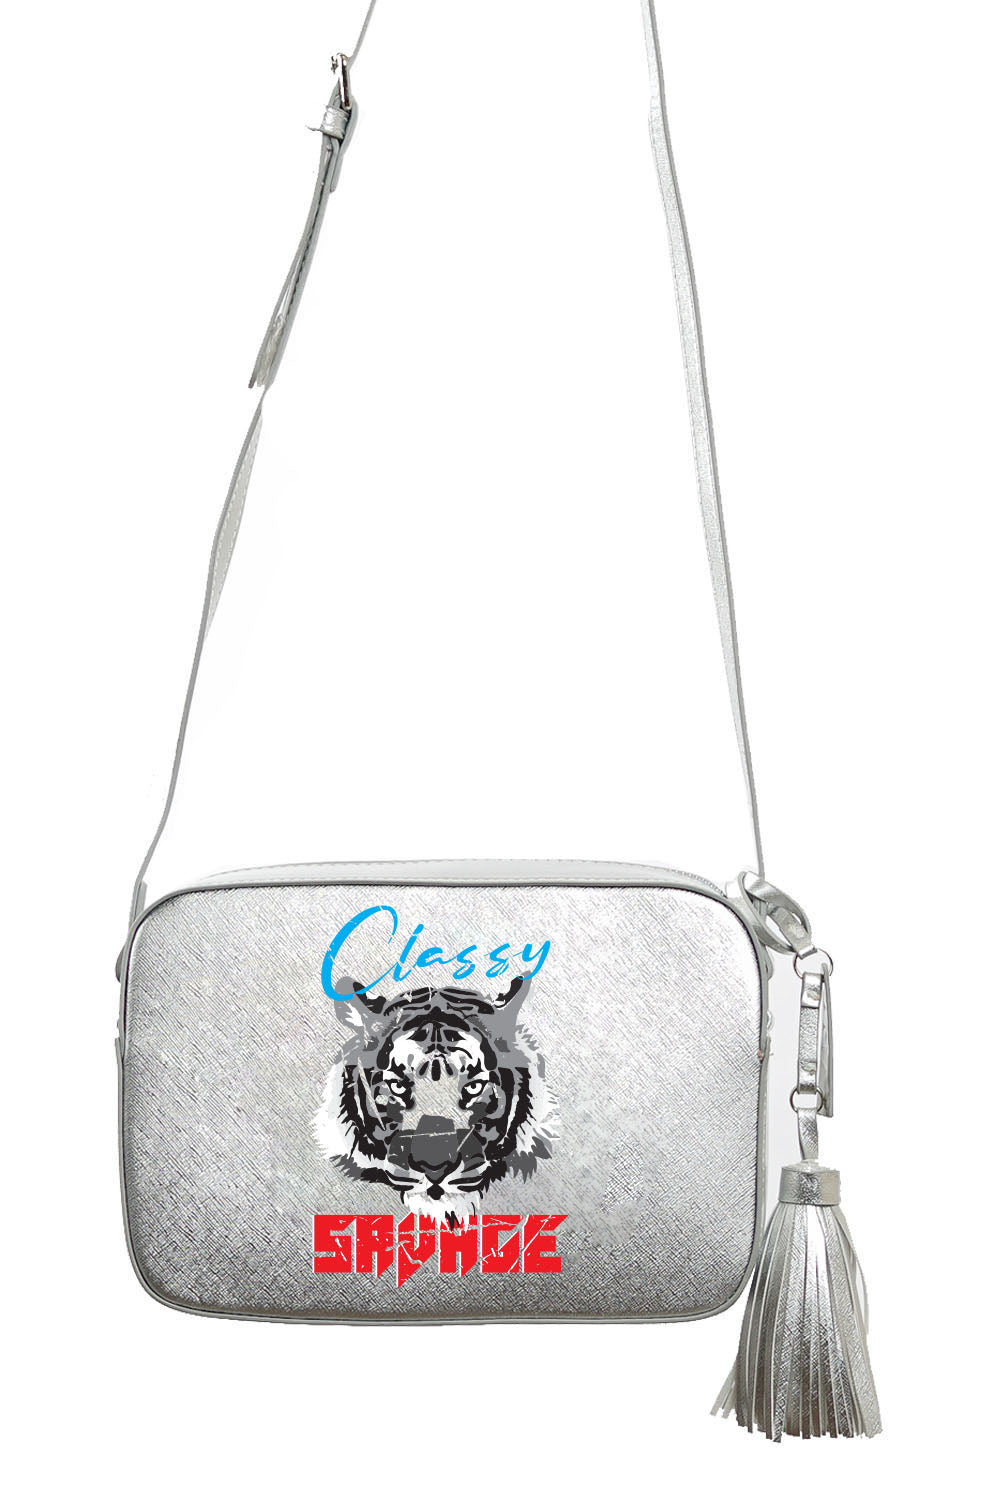 VEGAN CROSSBODY BAG - Classy Savage